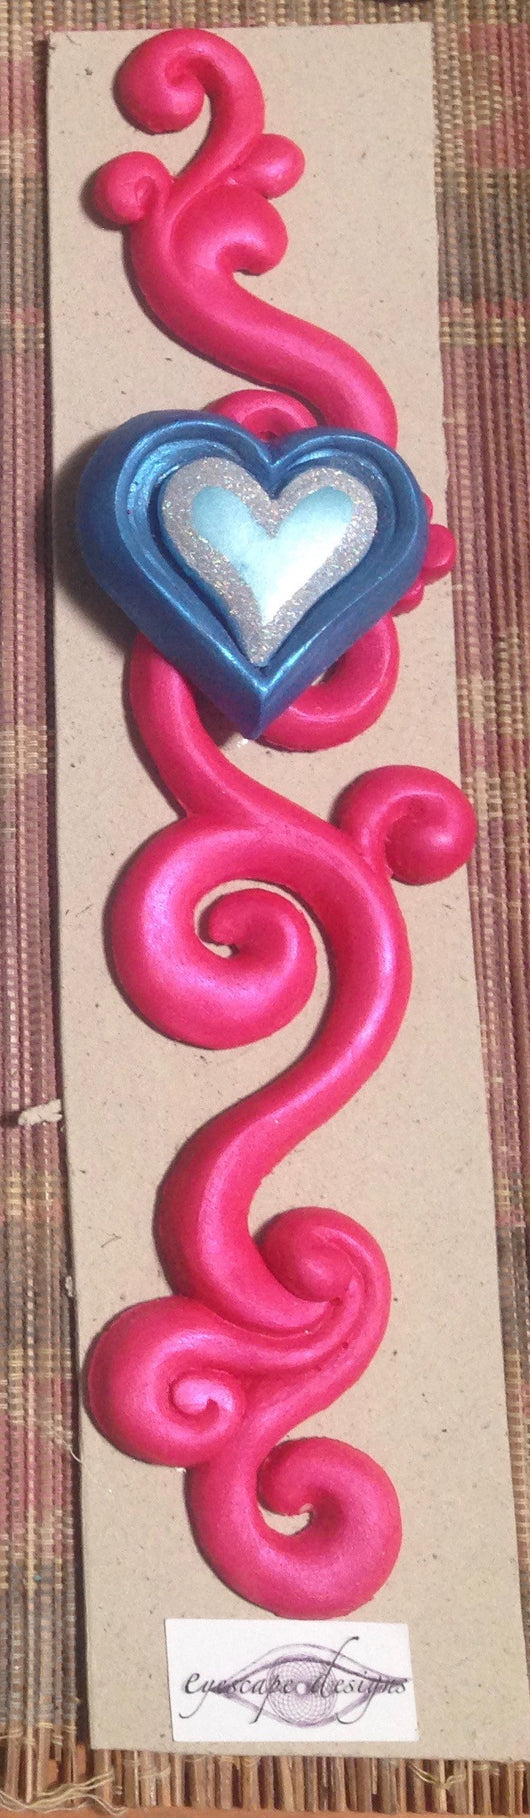 hot pink 3d swirl with blue & silver love heart fridge magnet